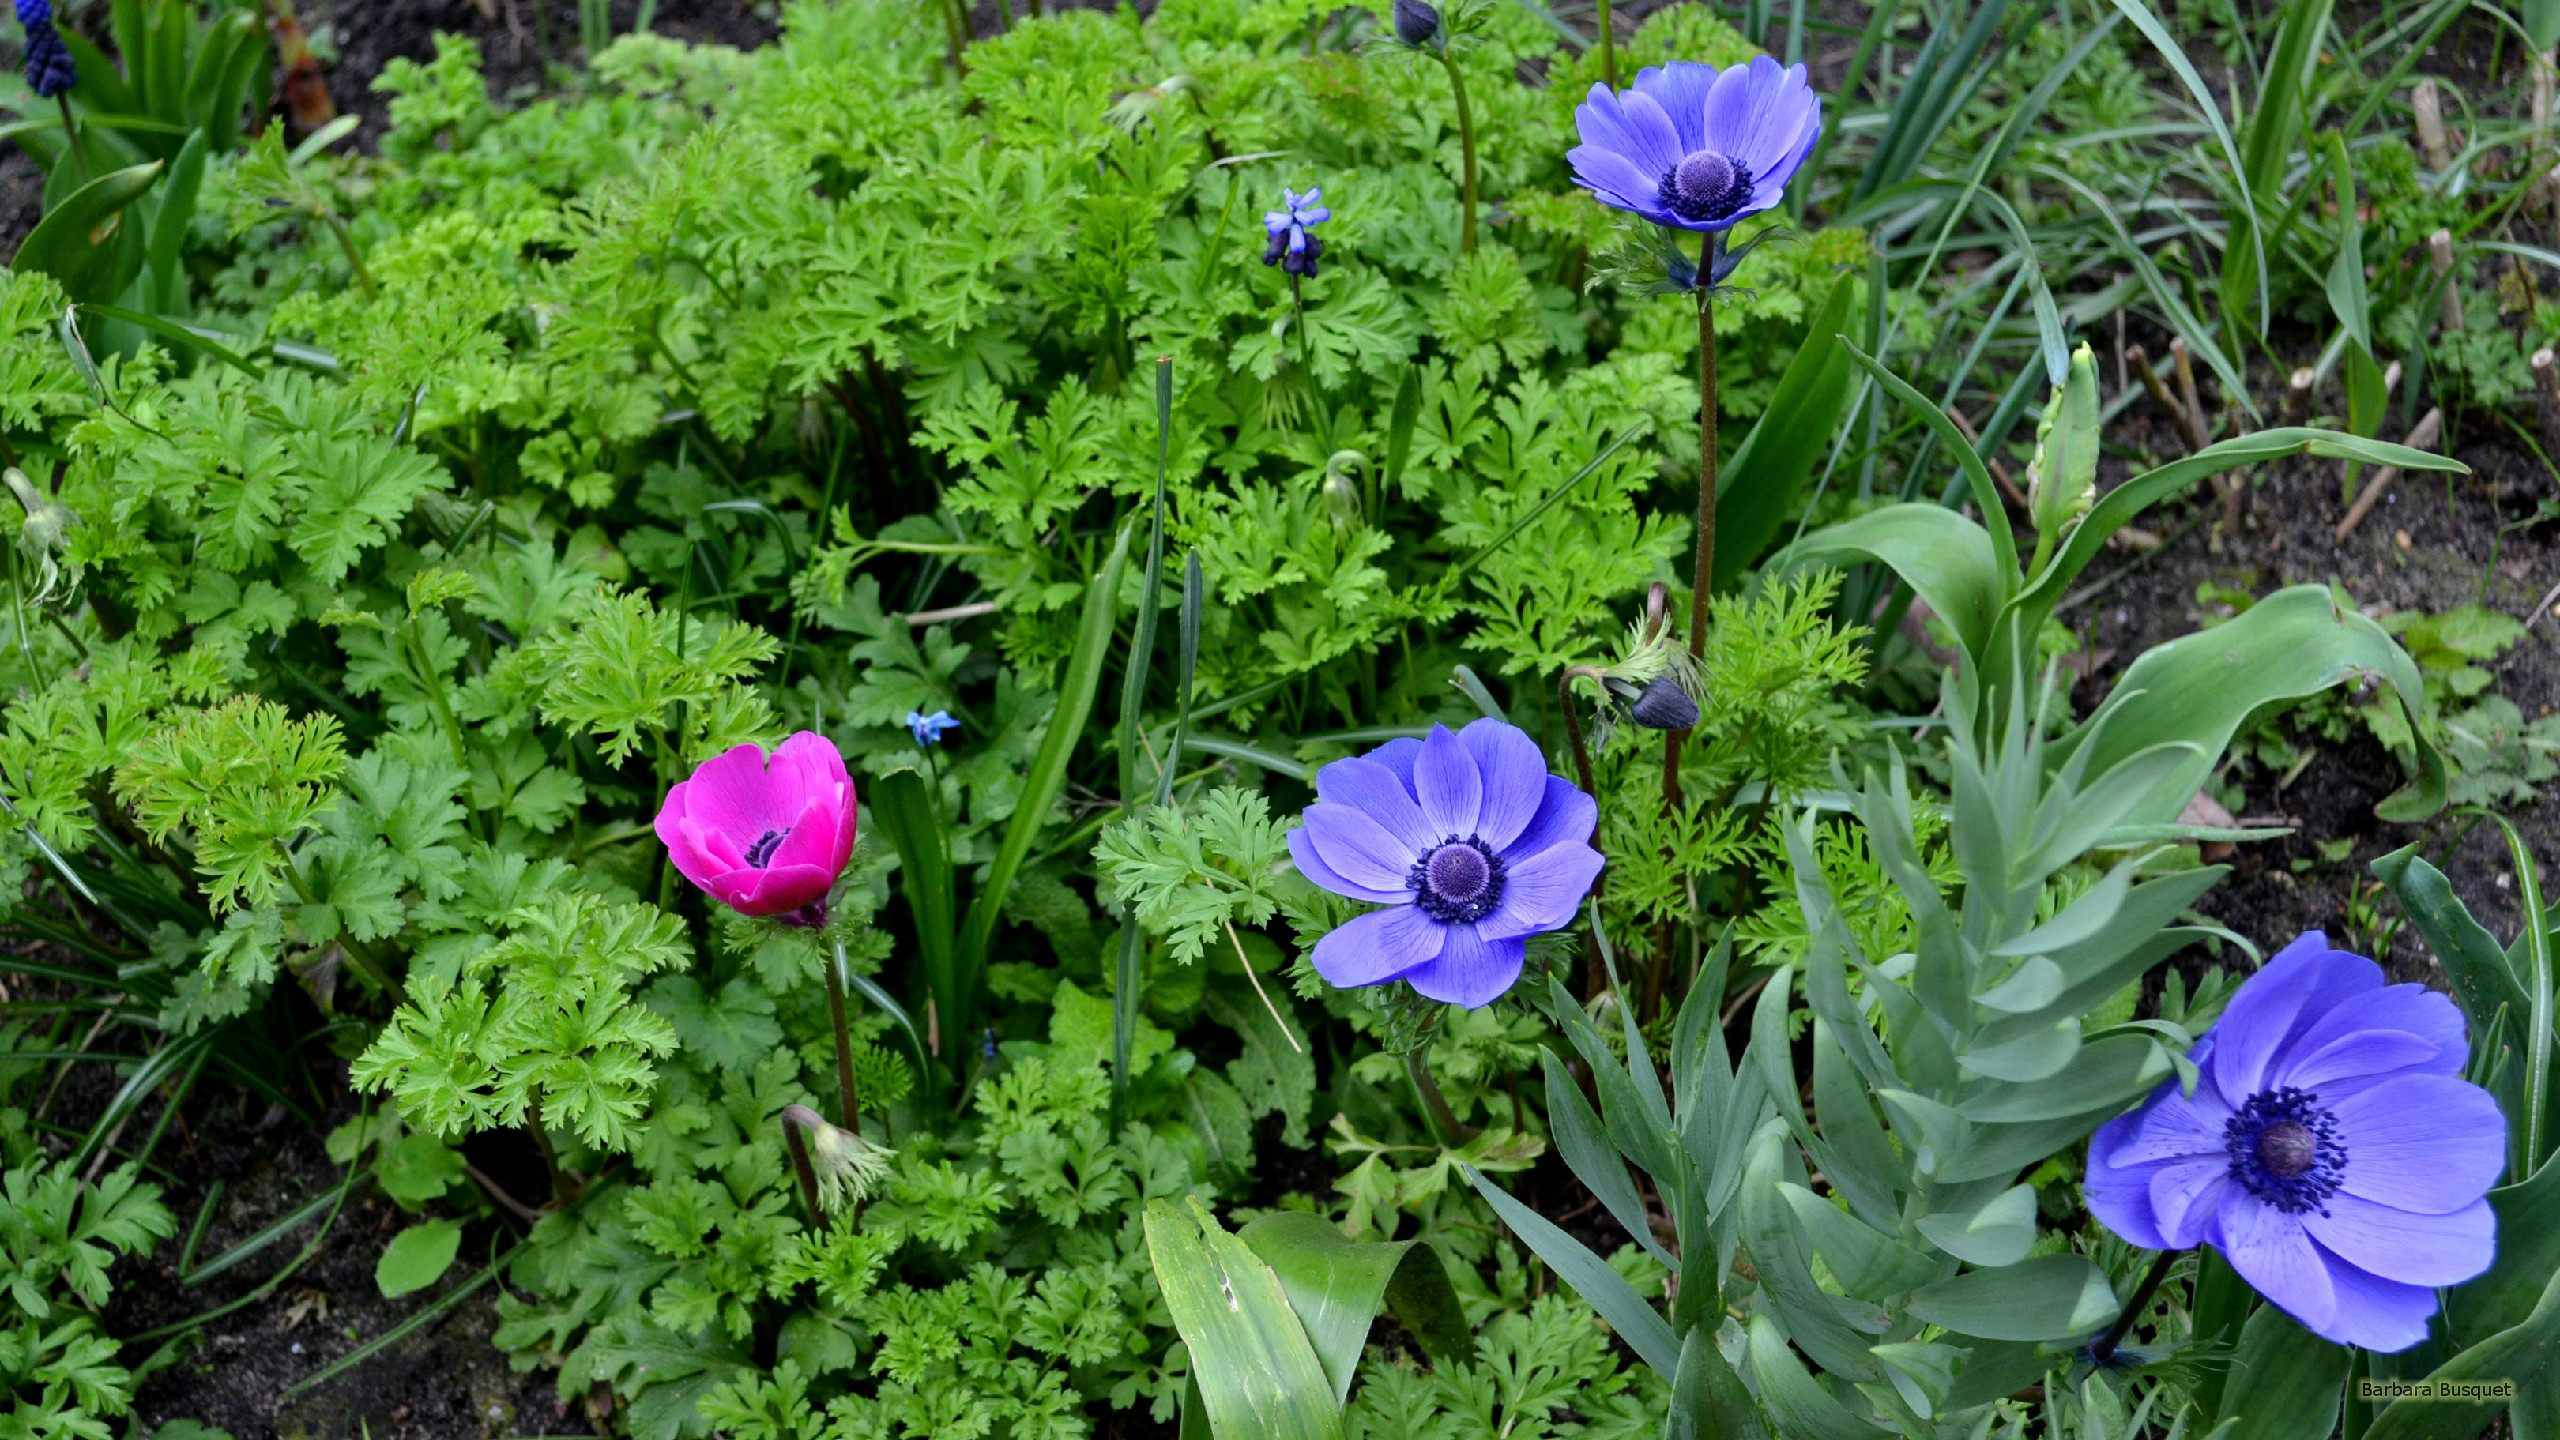 Purple Backyard Flowers : Garden wallpaper with purple flowers and one pink, between green